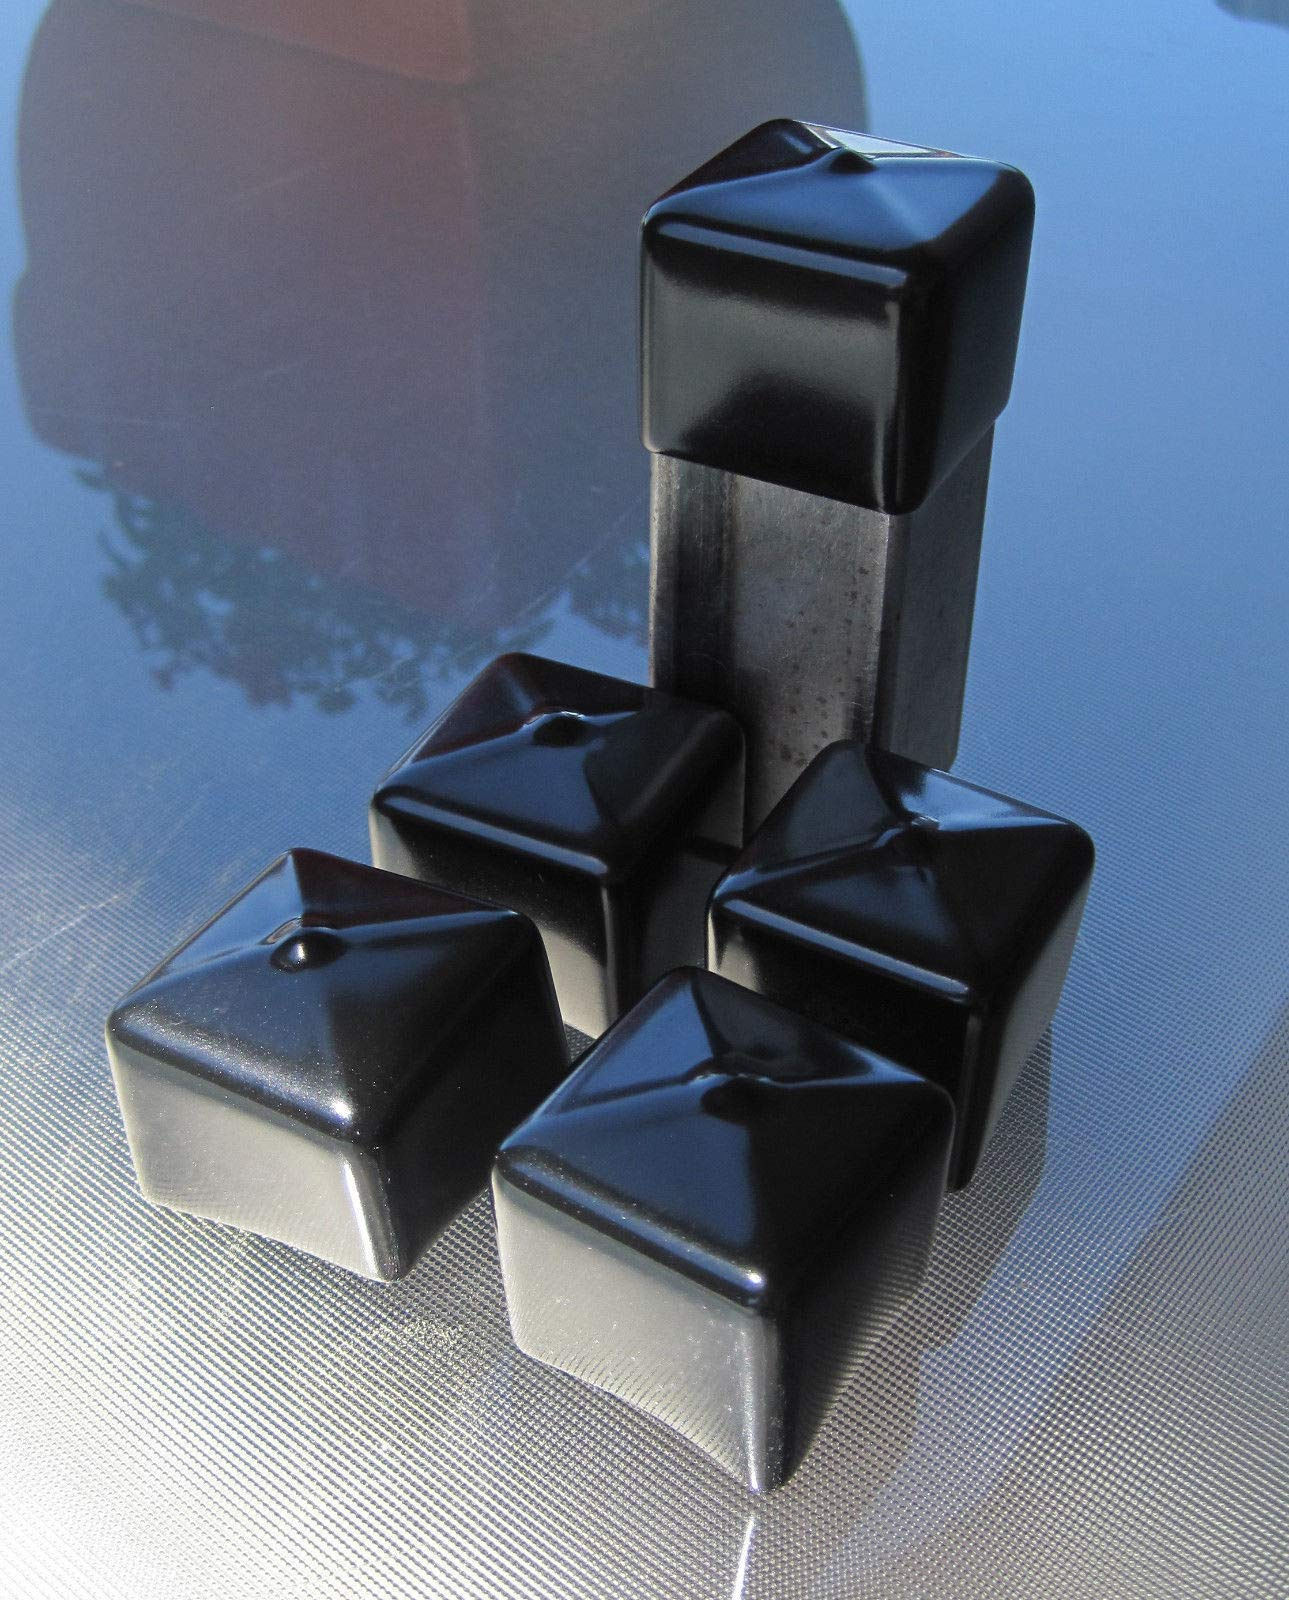 100-1'' Square Vinyl End Cap 1 Inch Deep Flexible Rubber Pipe Tubing Tube Cover by STRIKE ONLINE (Image #2)